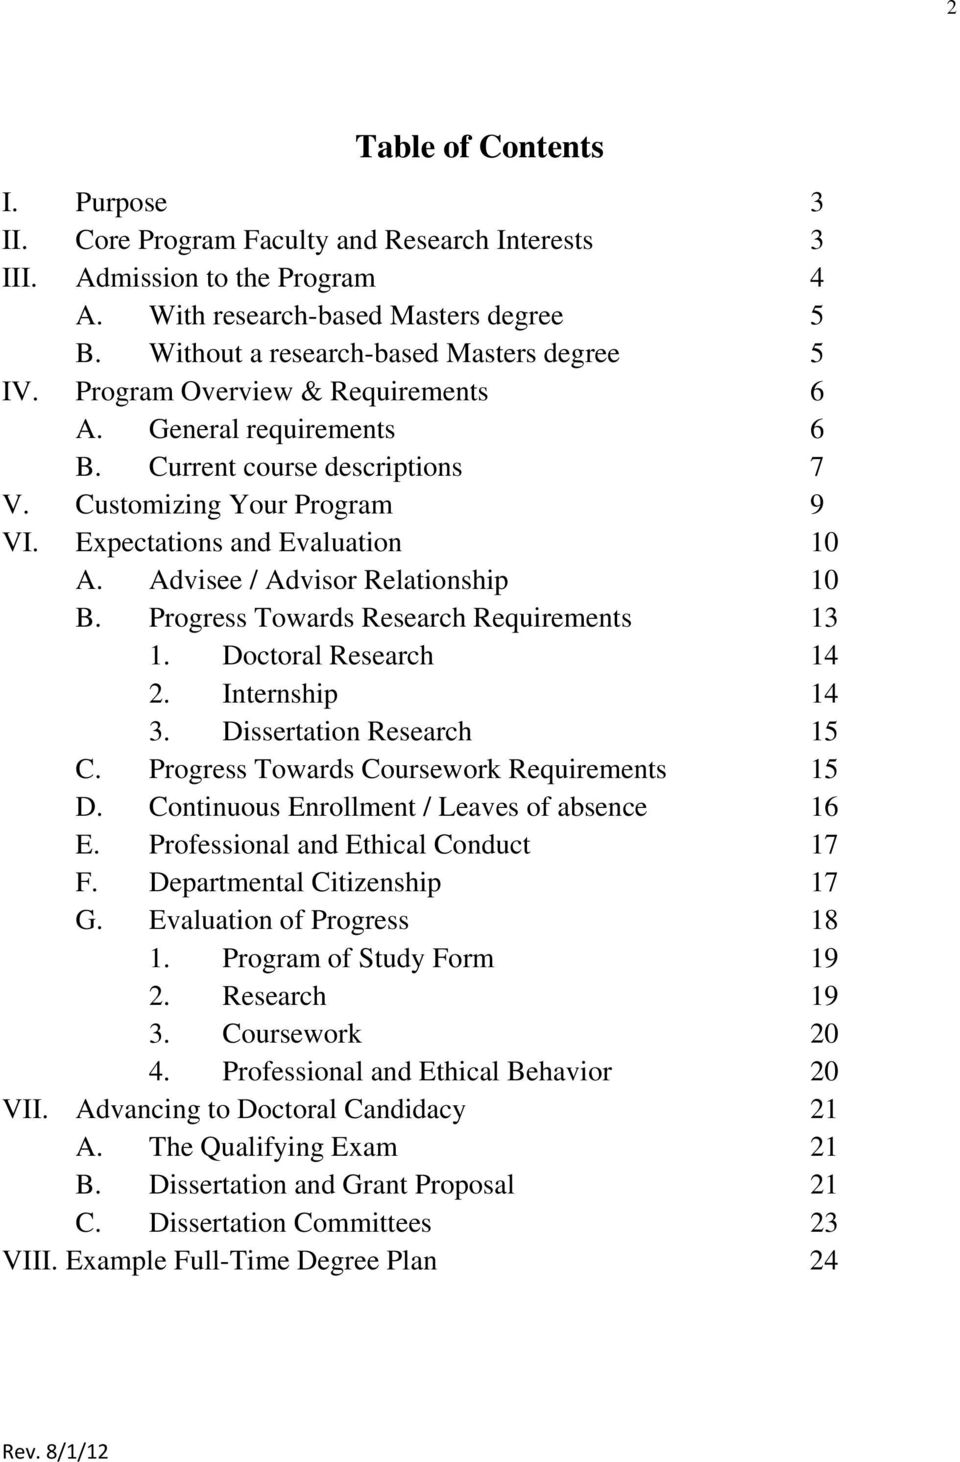 Expectations and Evaluation 10 A. Advisee / Advisor Relationship 10 B. Progress Towards Research Requirements 13 1. Doctoral Research 14 2. Internship 14 3. Dissertation Research 15 C.